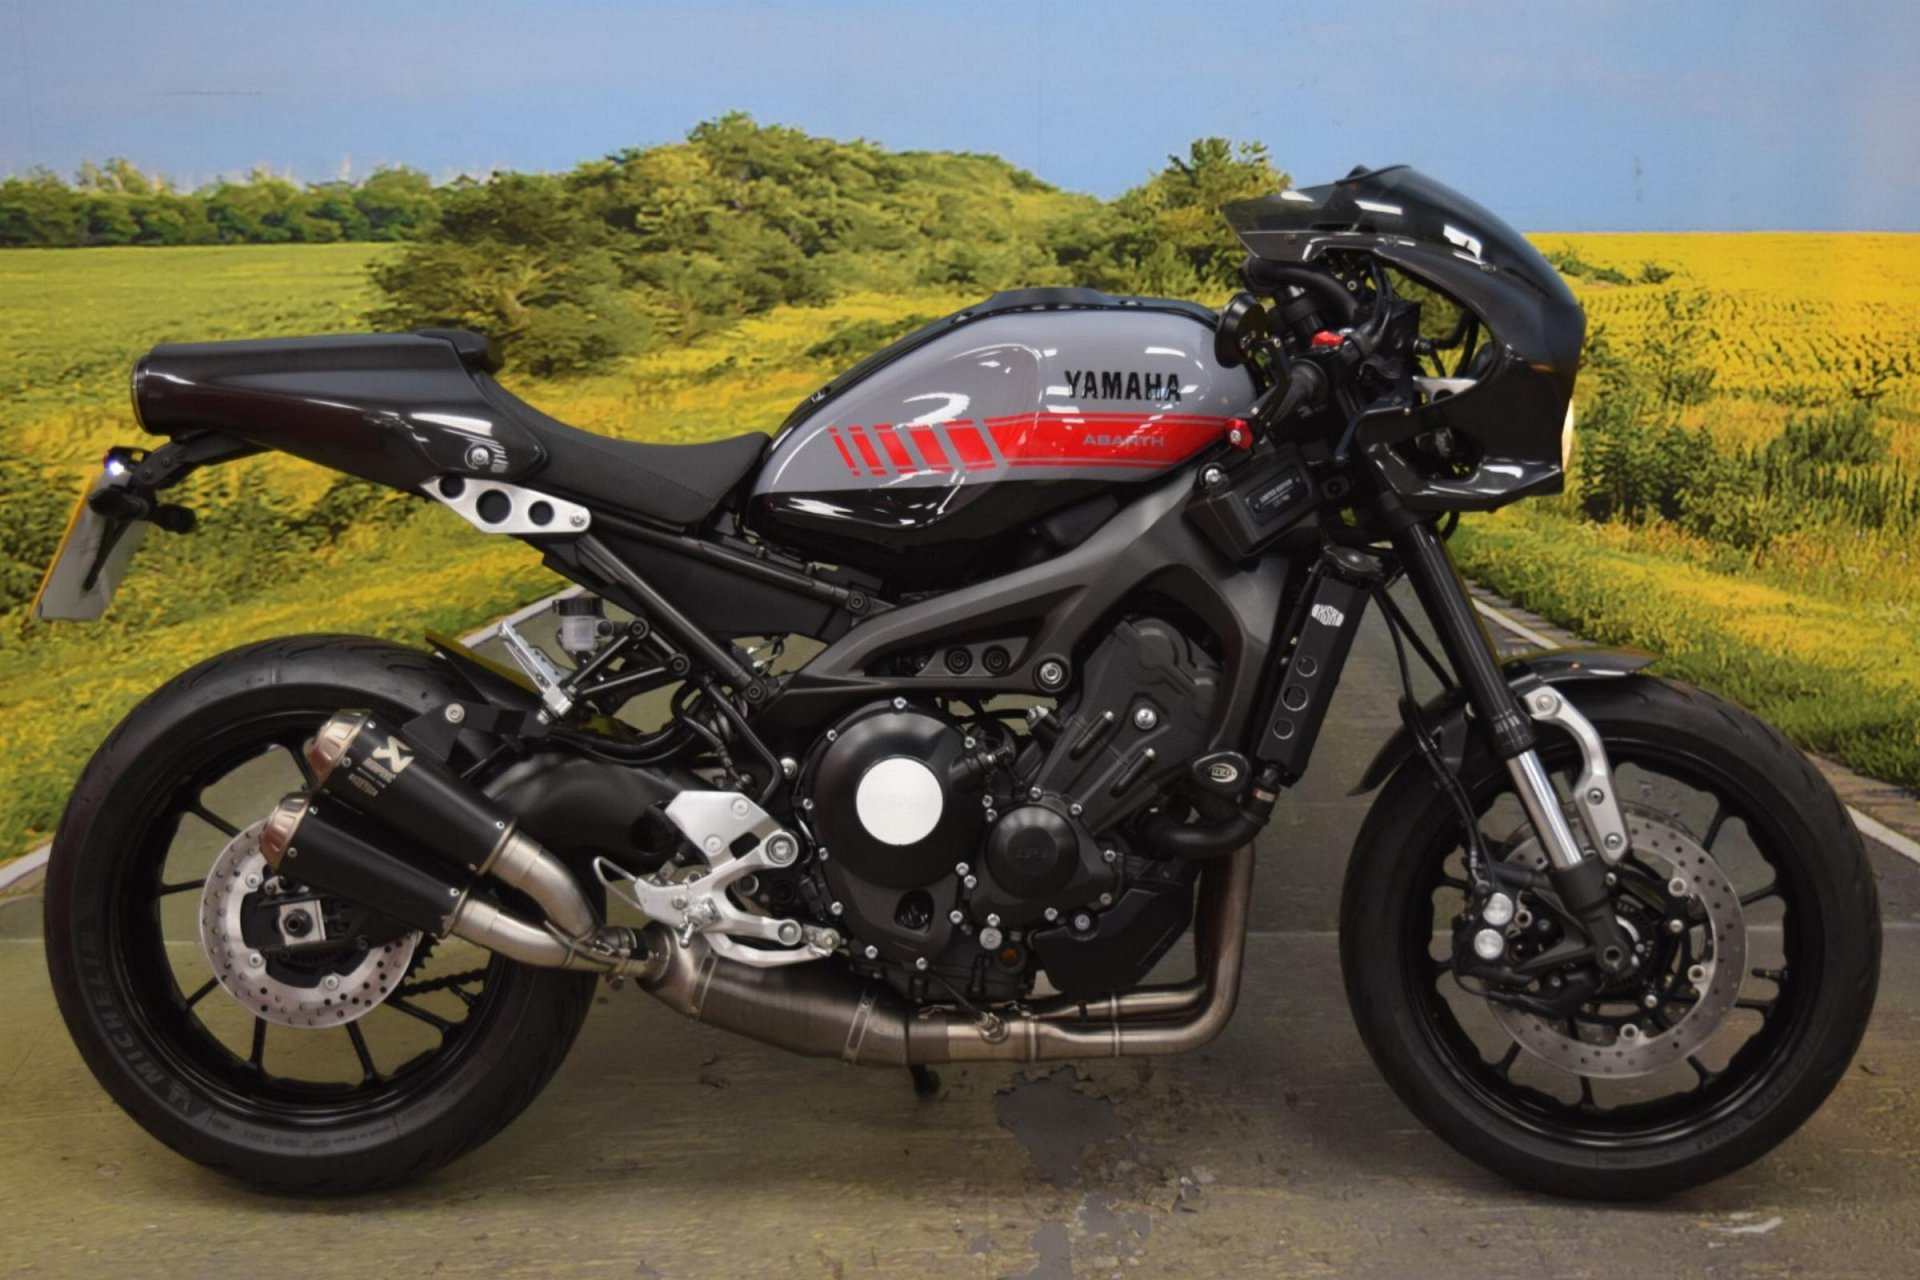 2017 Yamaha XSR 900 Abarth for sale in Staffordshire